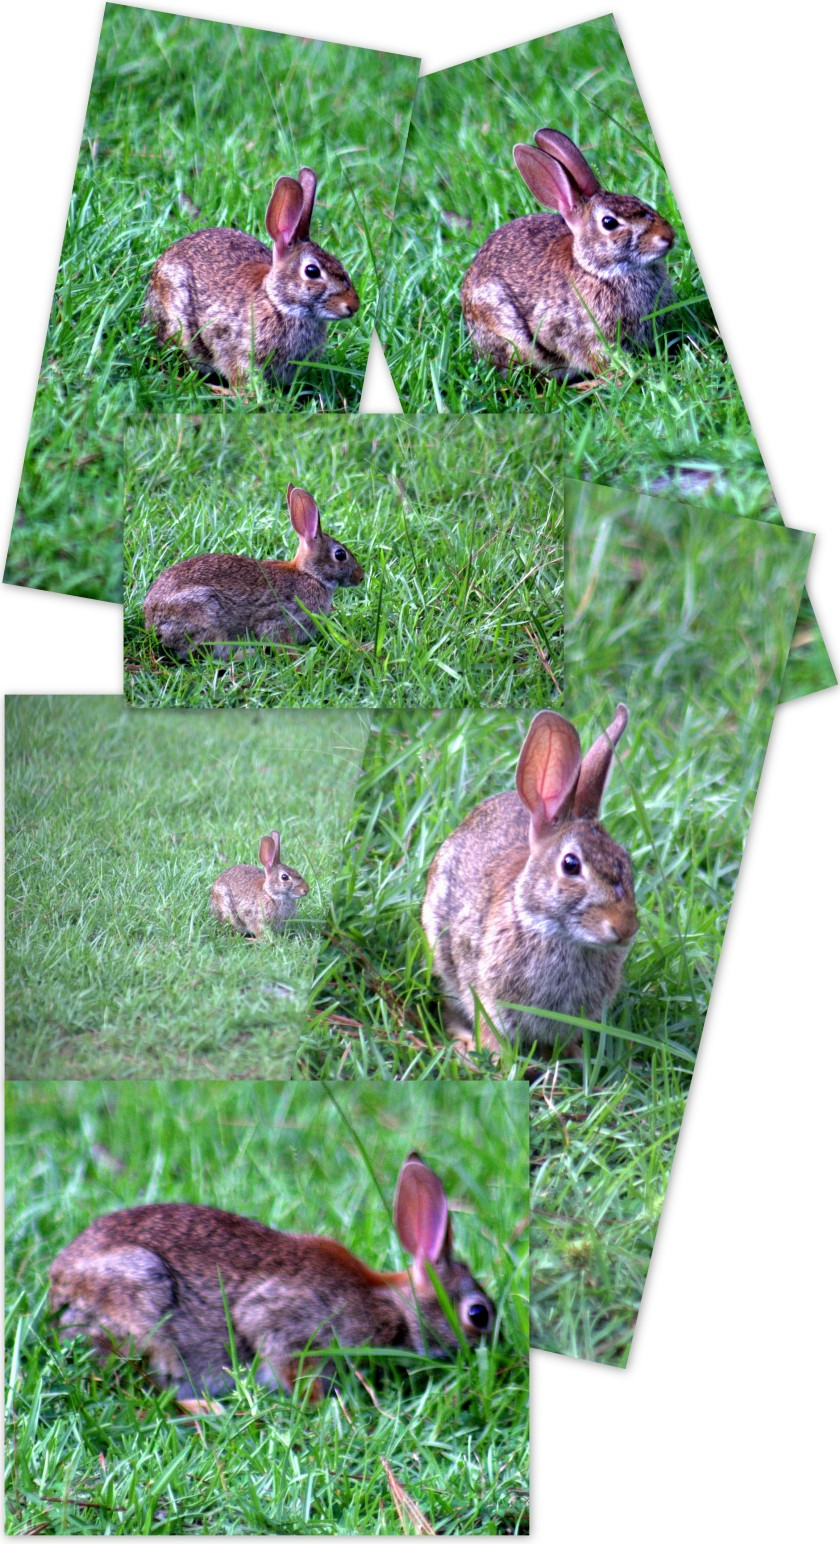 Rabbit in the yard...